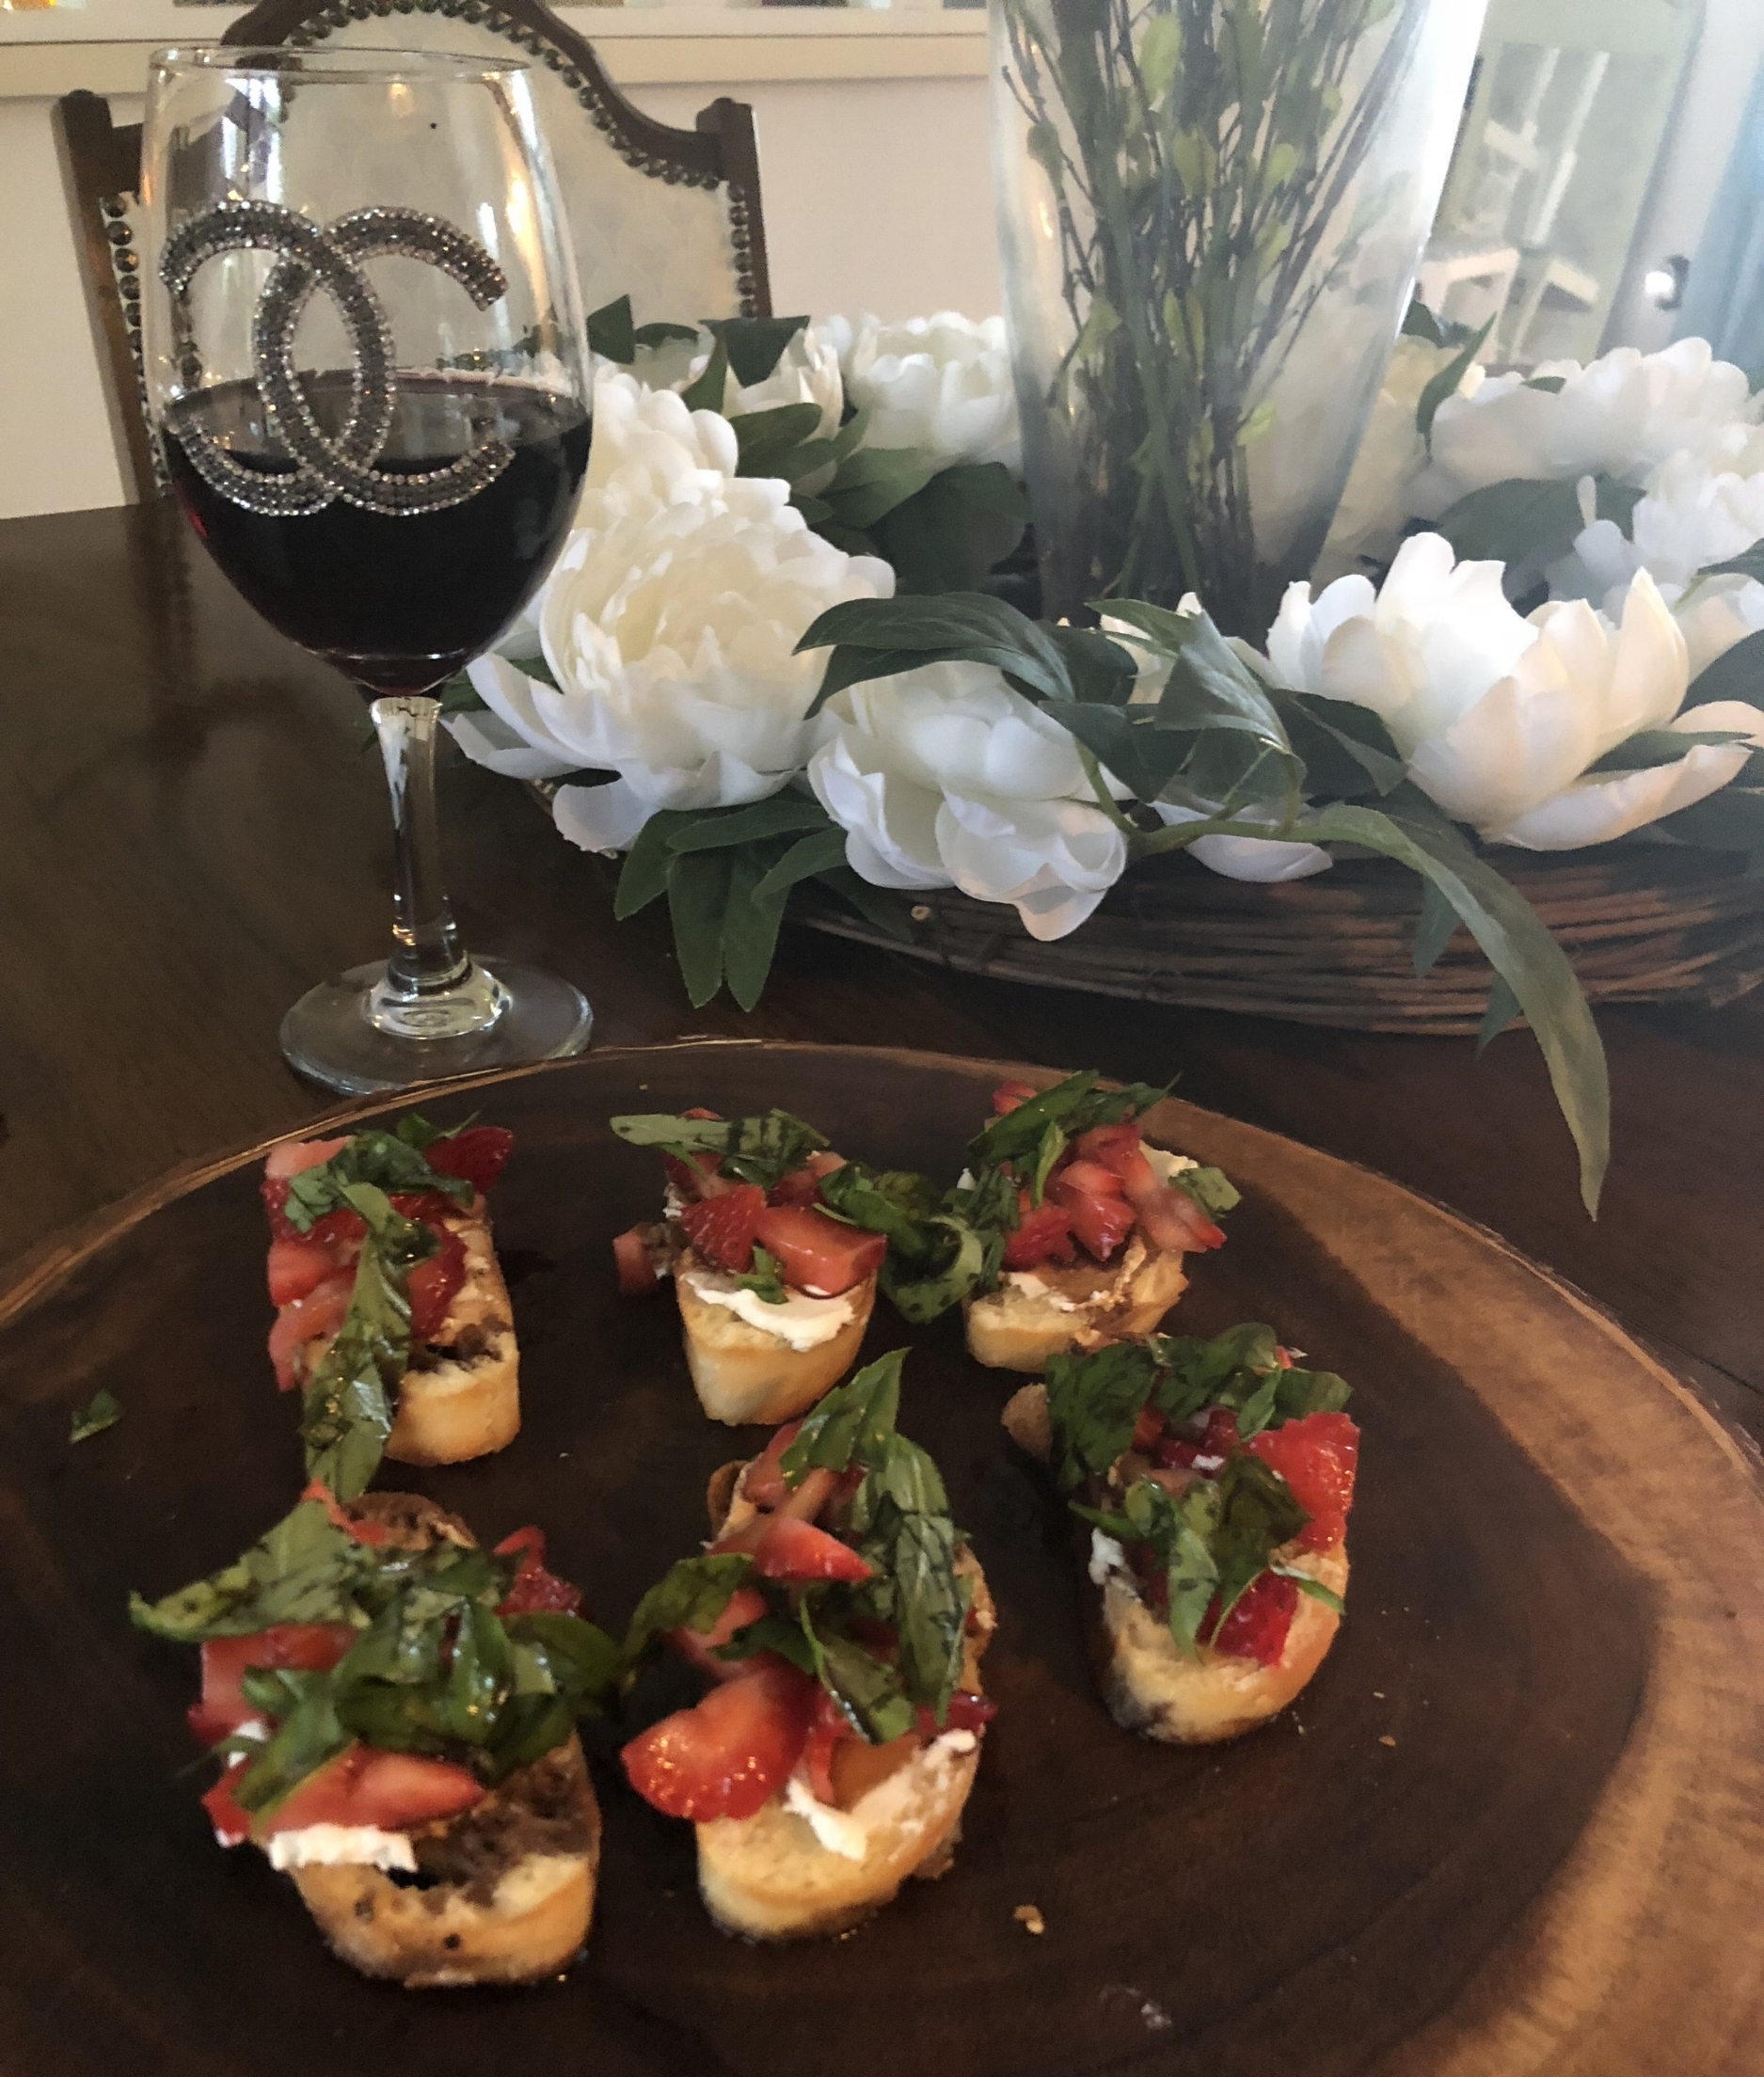 Strawberry bruschetta with goat cheese and balsalmic vinegar -